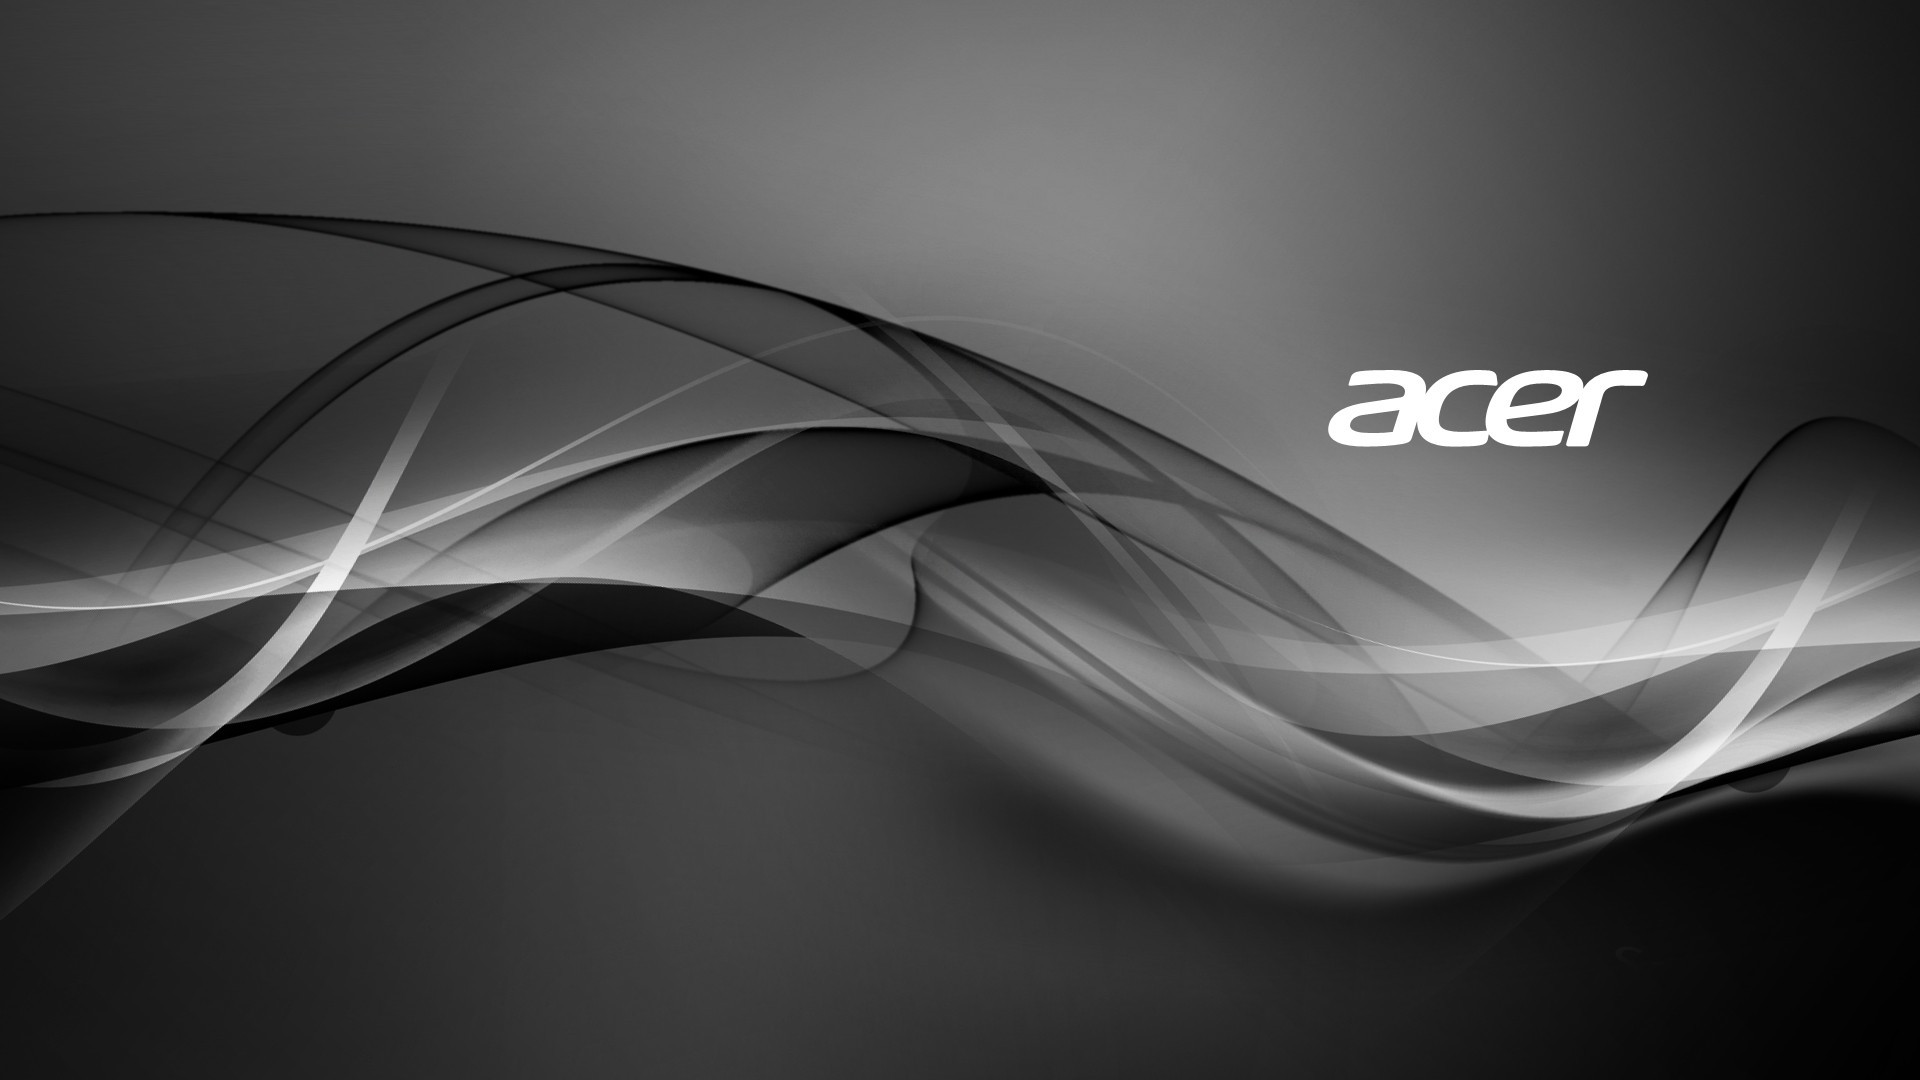 1920x1080 Acer Aspire Black And White Wallpaper 1080p